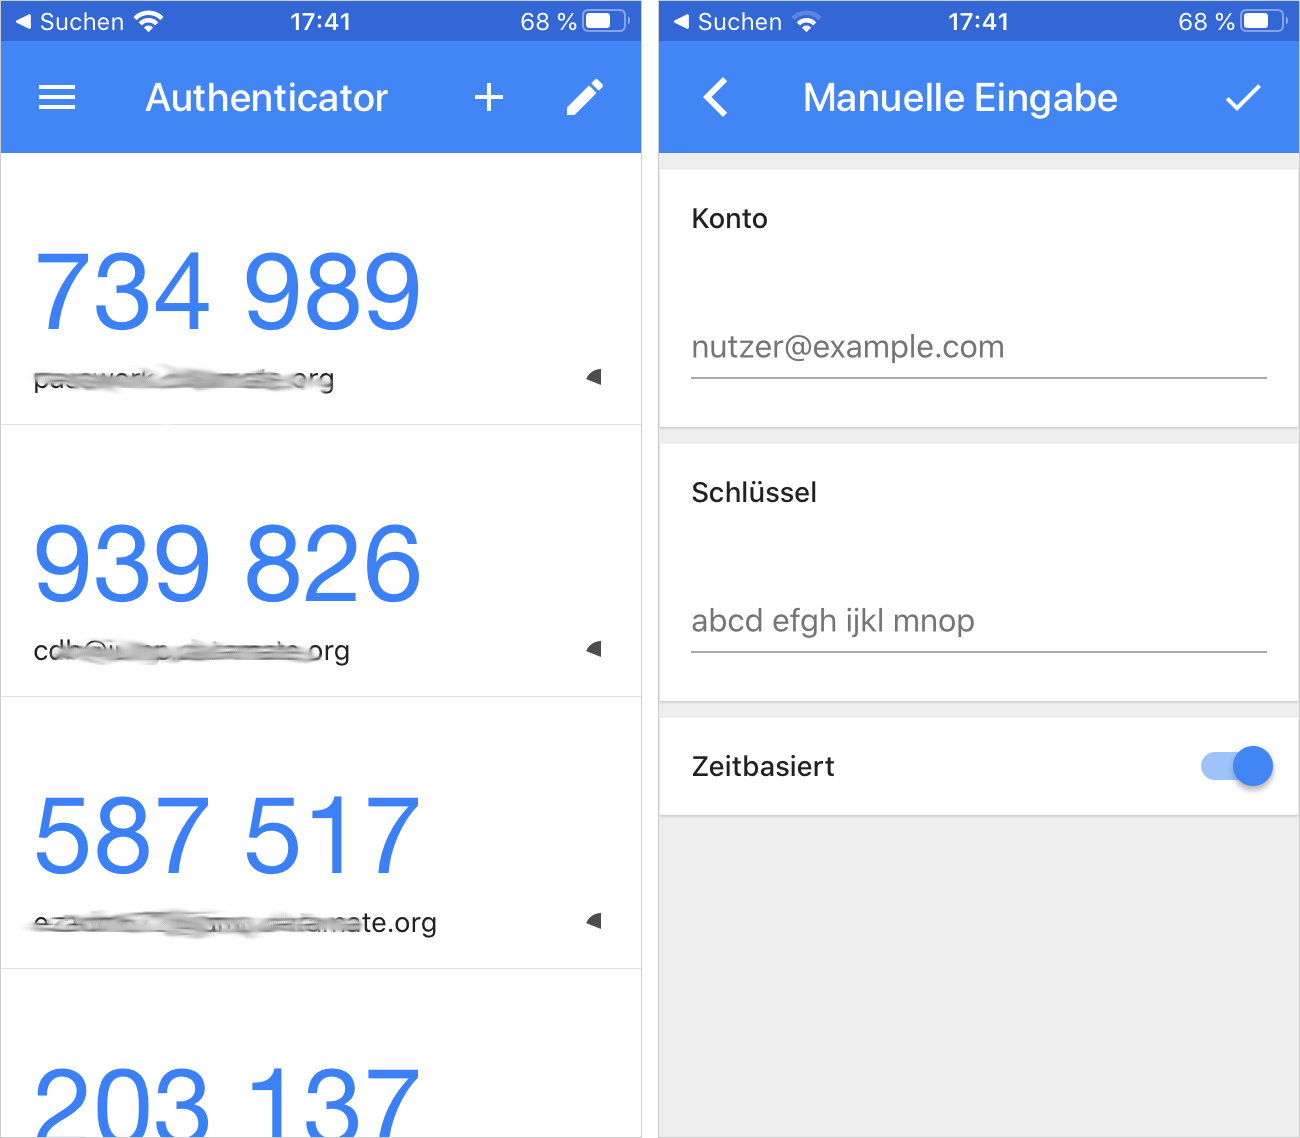 Vorschau des Google Authenticators